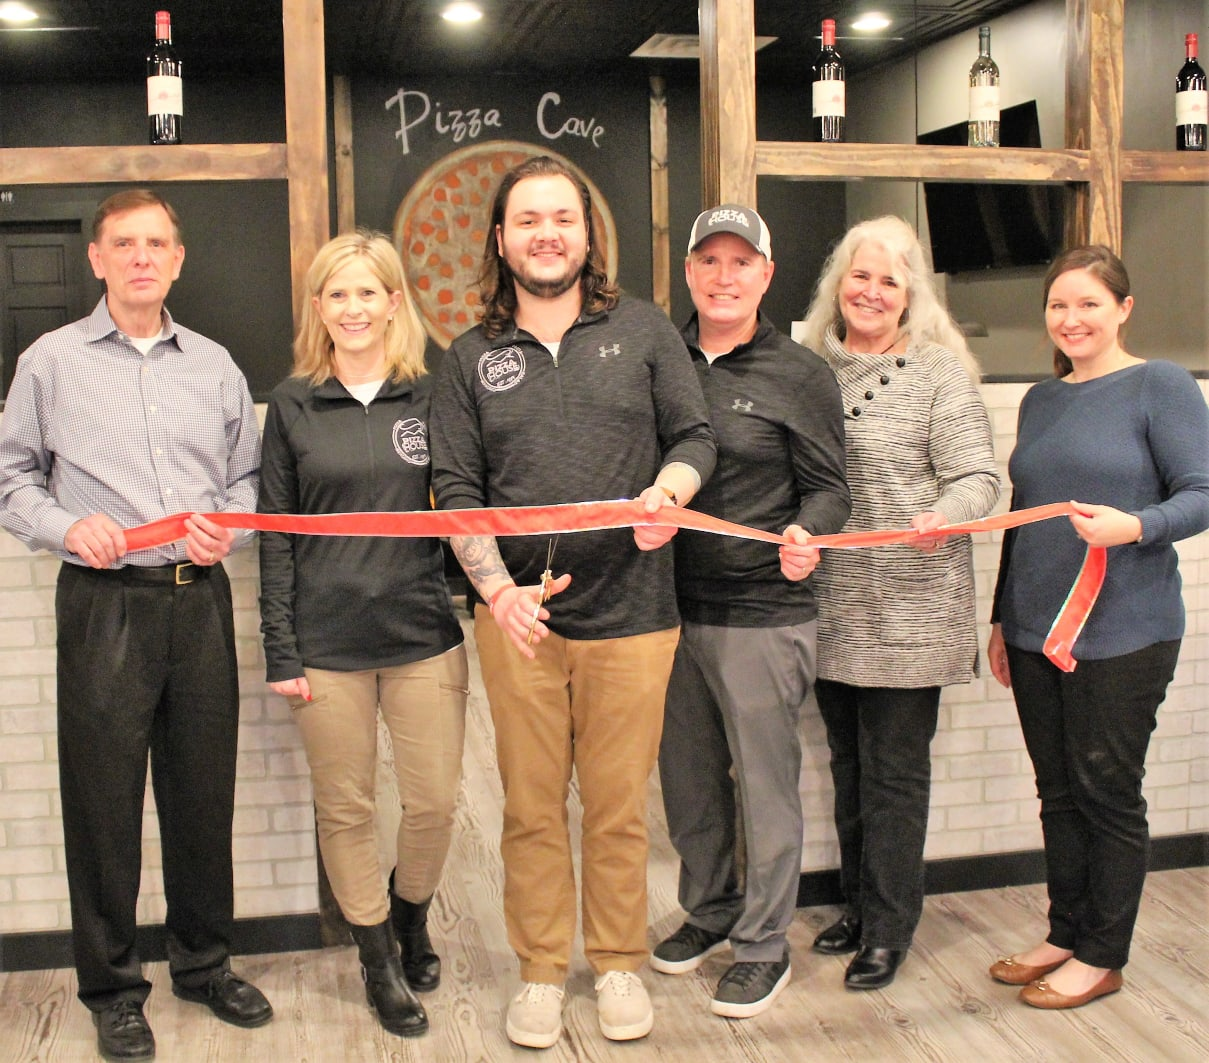 Members of the Northern Hamilton County Chamber of Commerce hosted a special ribbon cutting to celebrate the grand re-opening of Pizza House as it enters its 27th year in operation.  Pictured (l-r):  Dan Strong (Town of Cicero/NHCCC), Karmen Little (Pizza House), Tayler Millbank (Pizza House), Steve Little (Pizza House), Liz Foley (NHCCC) and Samantha Miller (NHCCC).